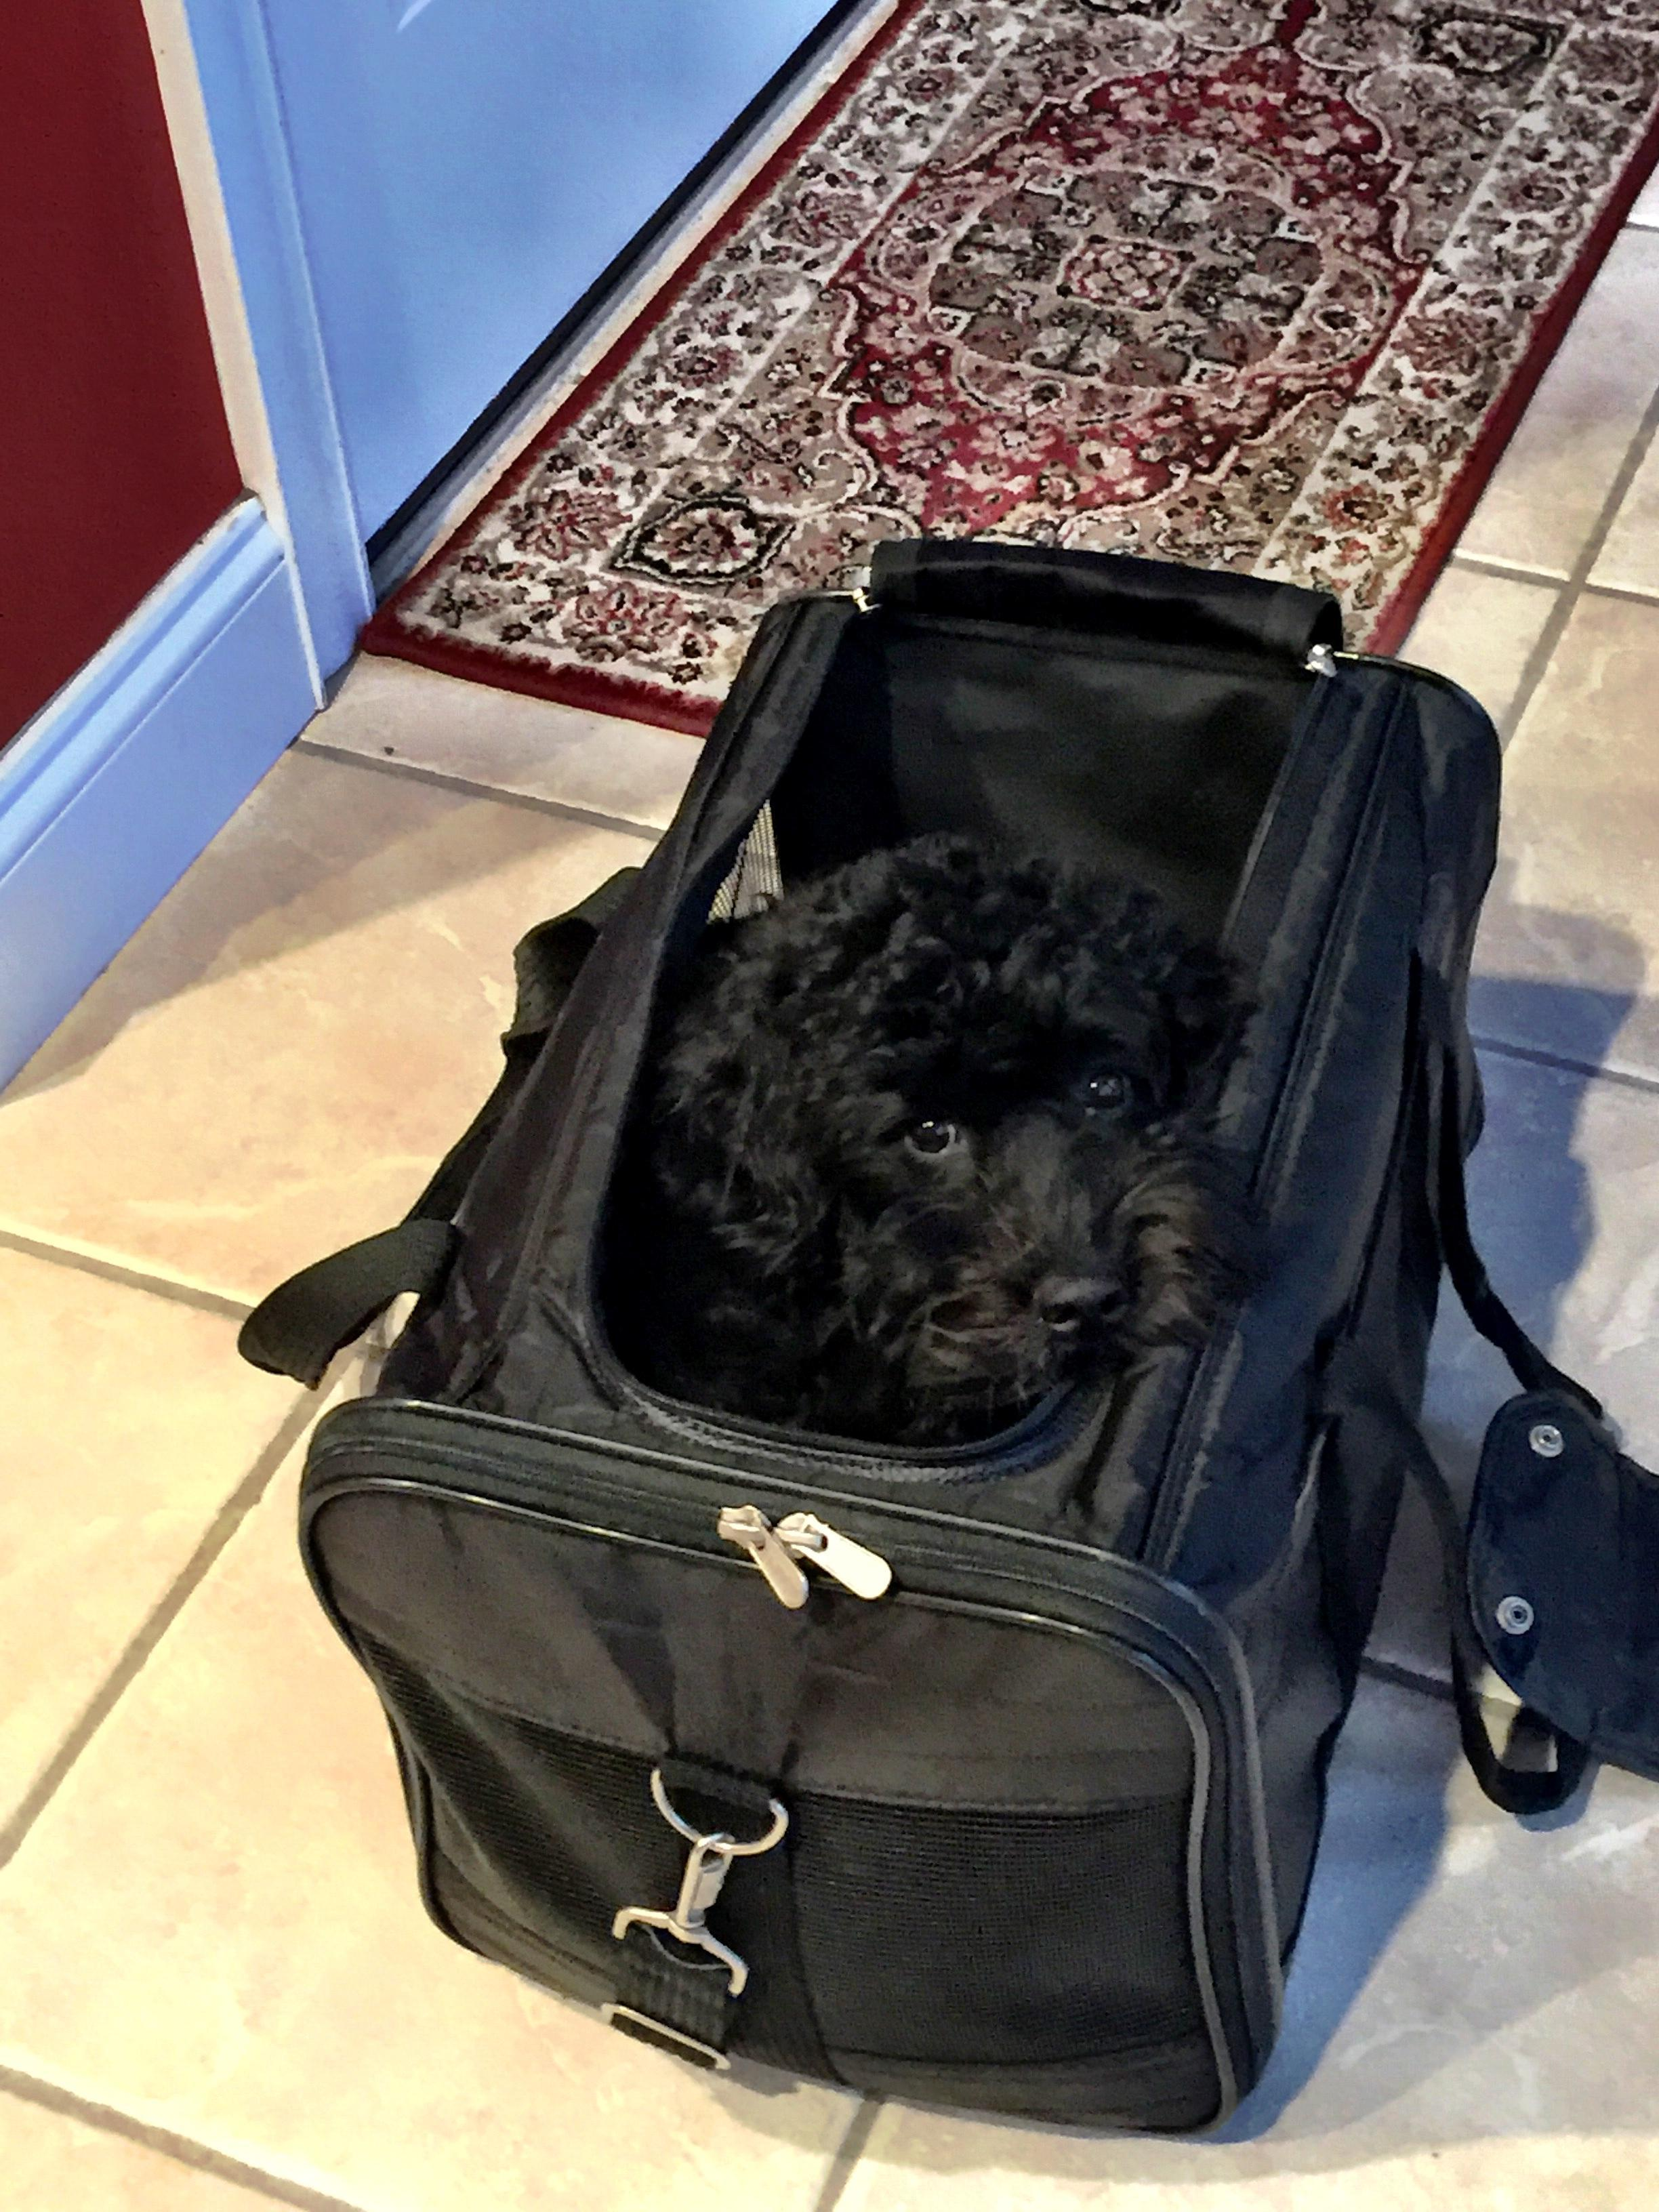 Dog in sherpa carrier for traveling